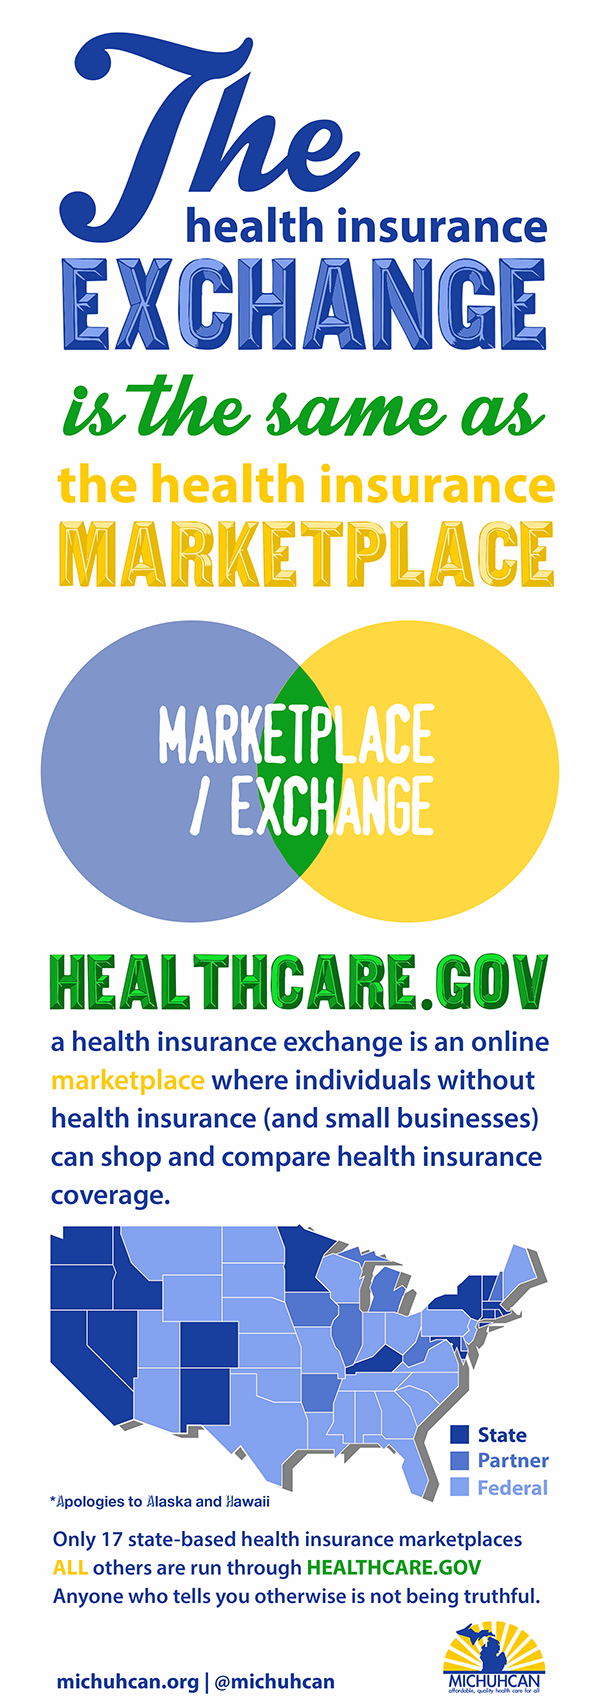 What's the Difference Between the Health Insurance Exchange and the Health InsuranceMarketplace?